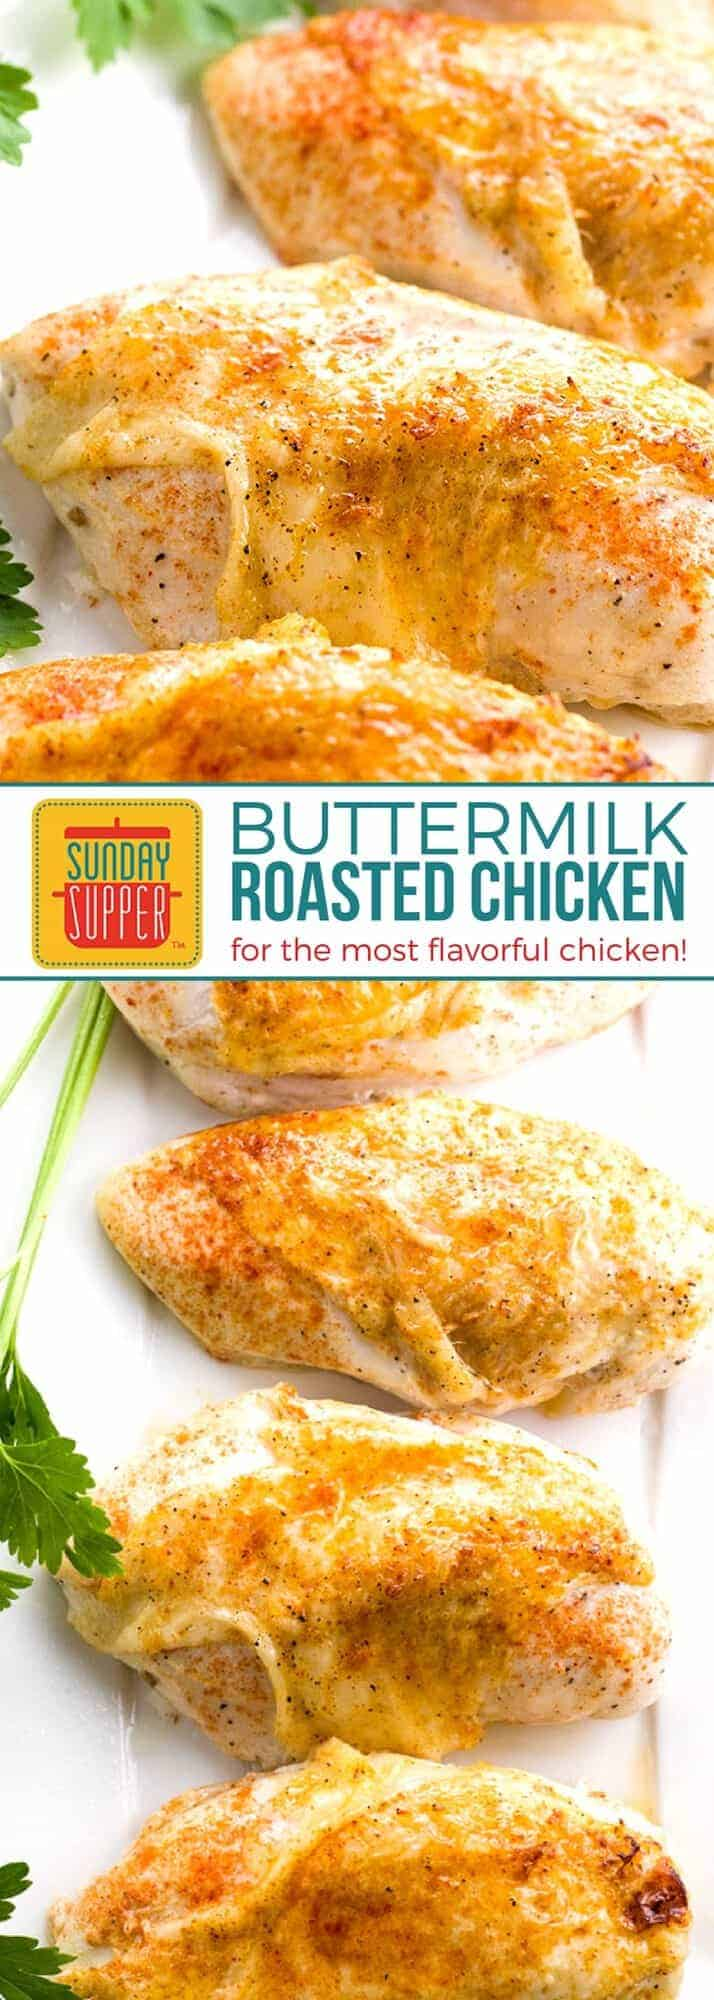 The MOST flavorful, tender, & Juicy chicken you will EVER make! Buttermilk Roasted Chicken makes a quick and easy weeknight or Sunday dinner. It's an easy chicken recipe that the whole family will love. And, it makes the perfect Sunday Supper recipe to celebrate Sunday Supper Month! #SundaySupper #ChickenRecipes #ButtermilkRecipes #EasyRecipes